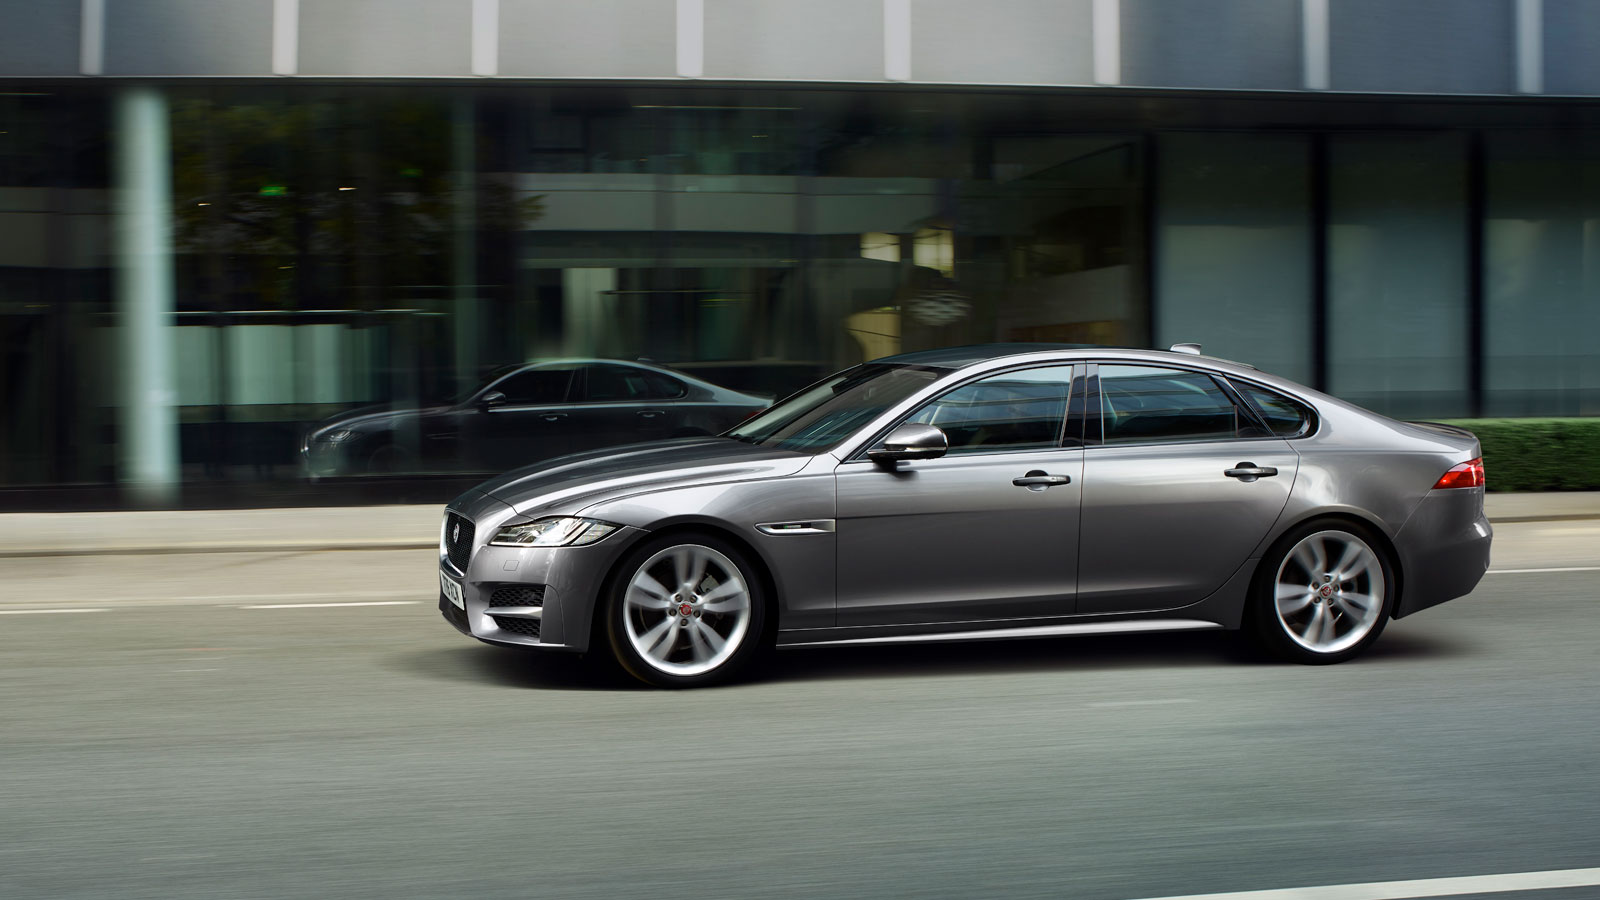 Side Profile View of Jaguar XF Driving In City.